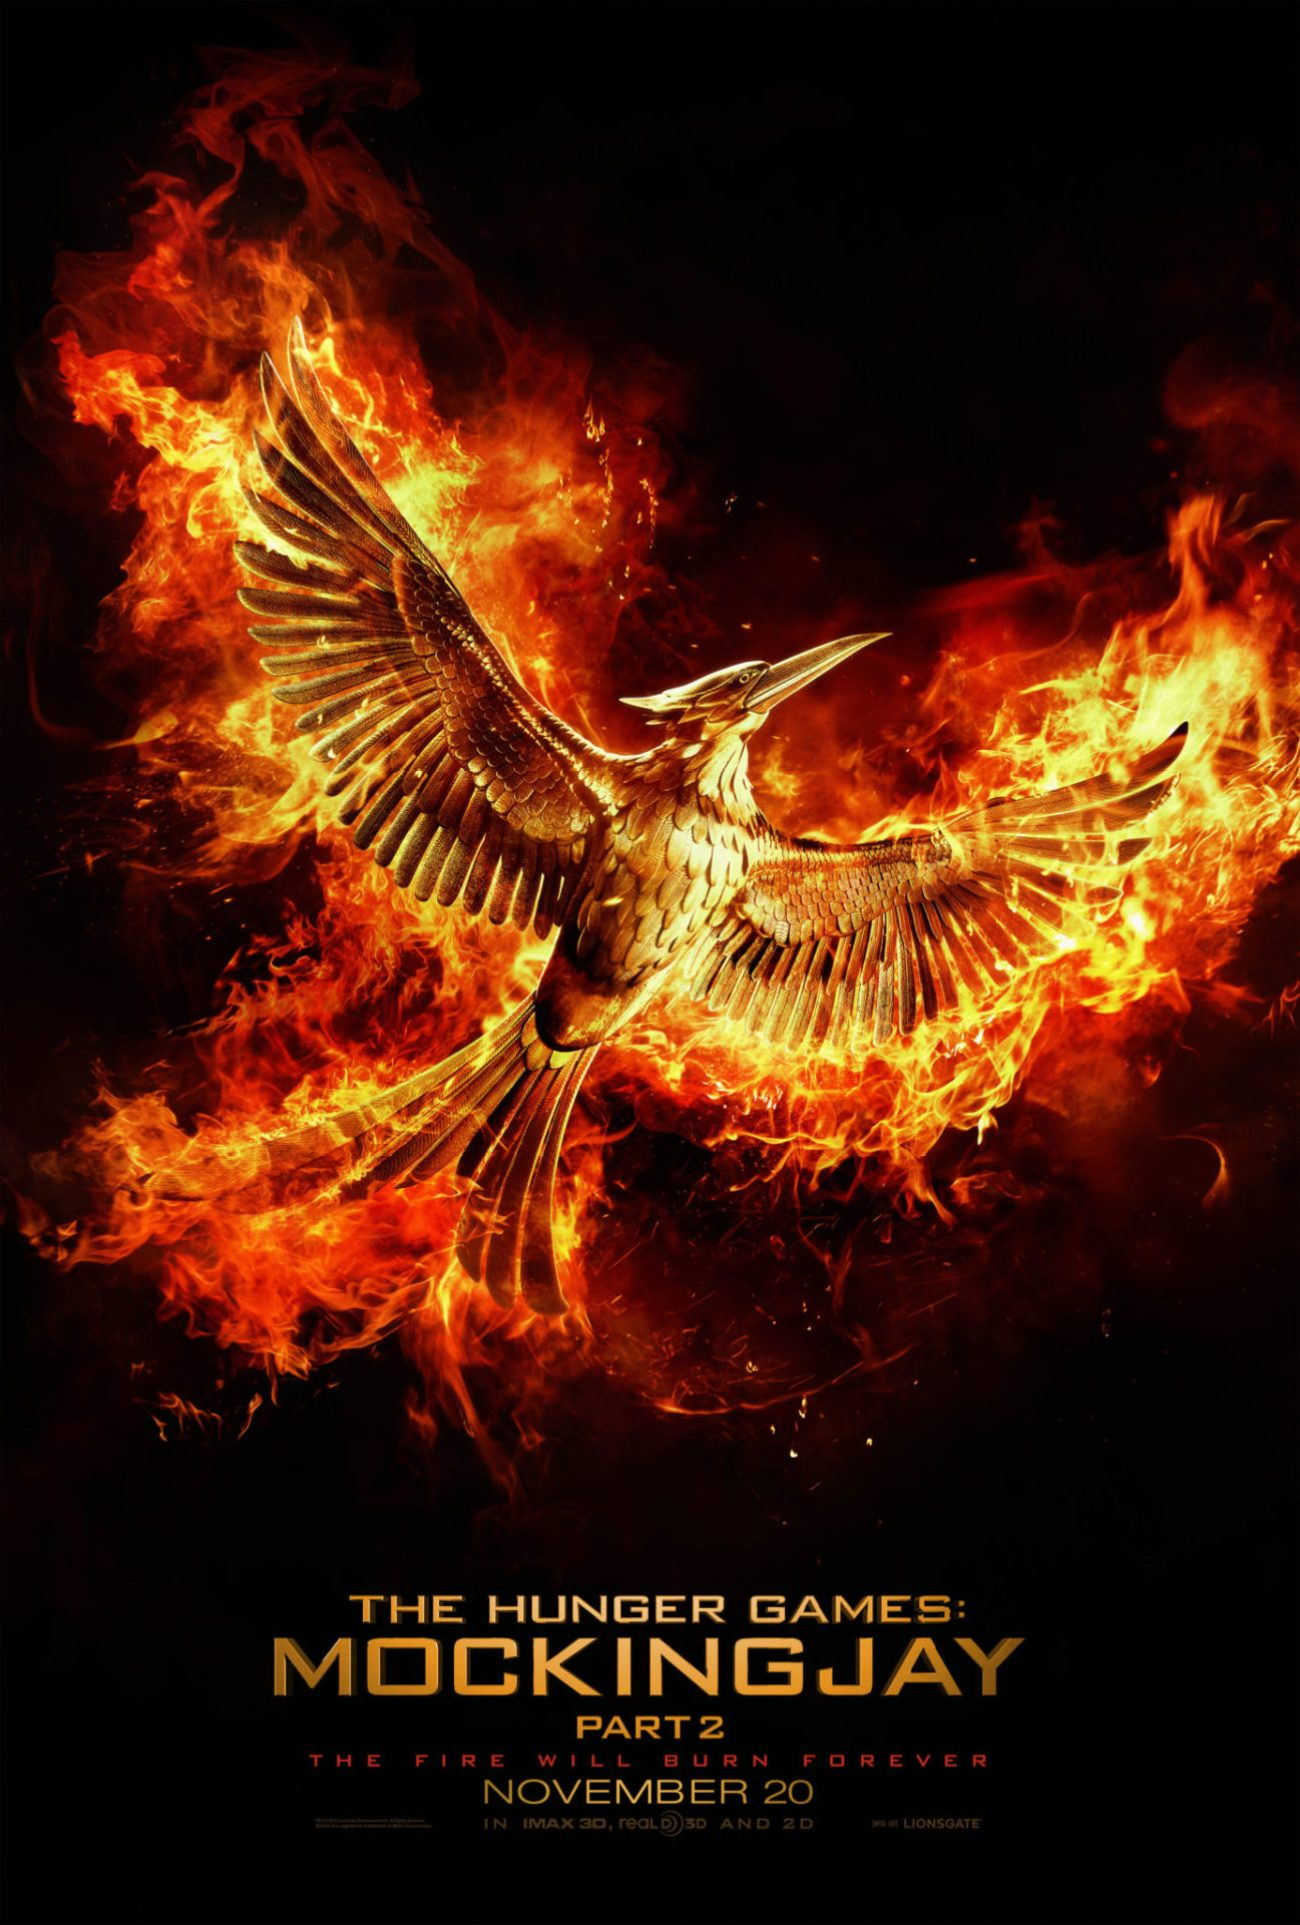 the-hunger-games-mockingjay-part-2-movie-poster